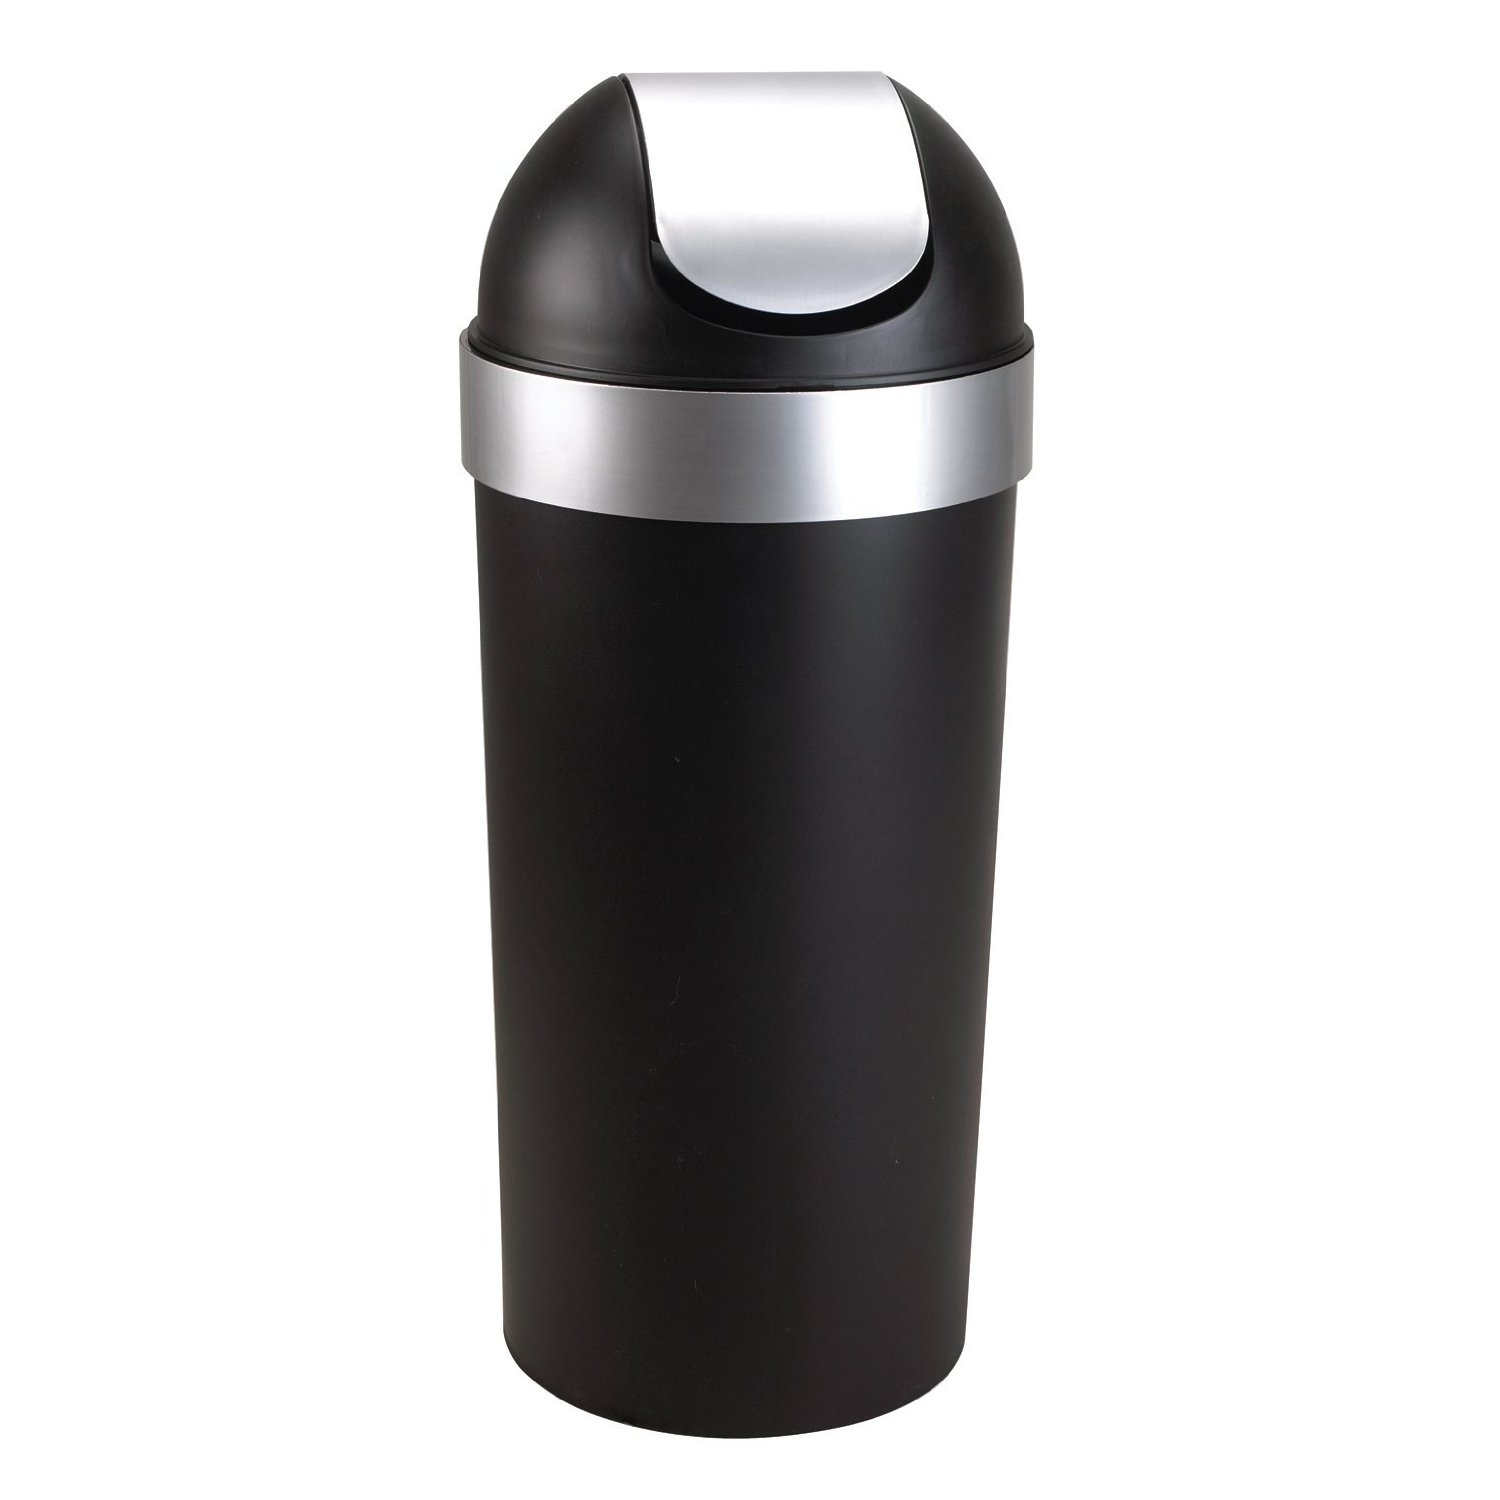 Umbra Swing-Top Trash Can Garbage Can